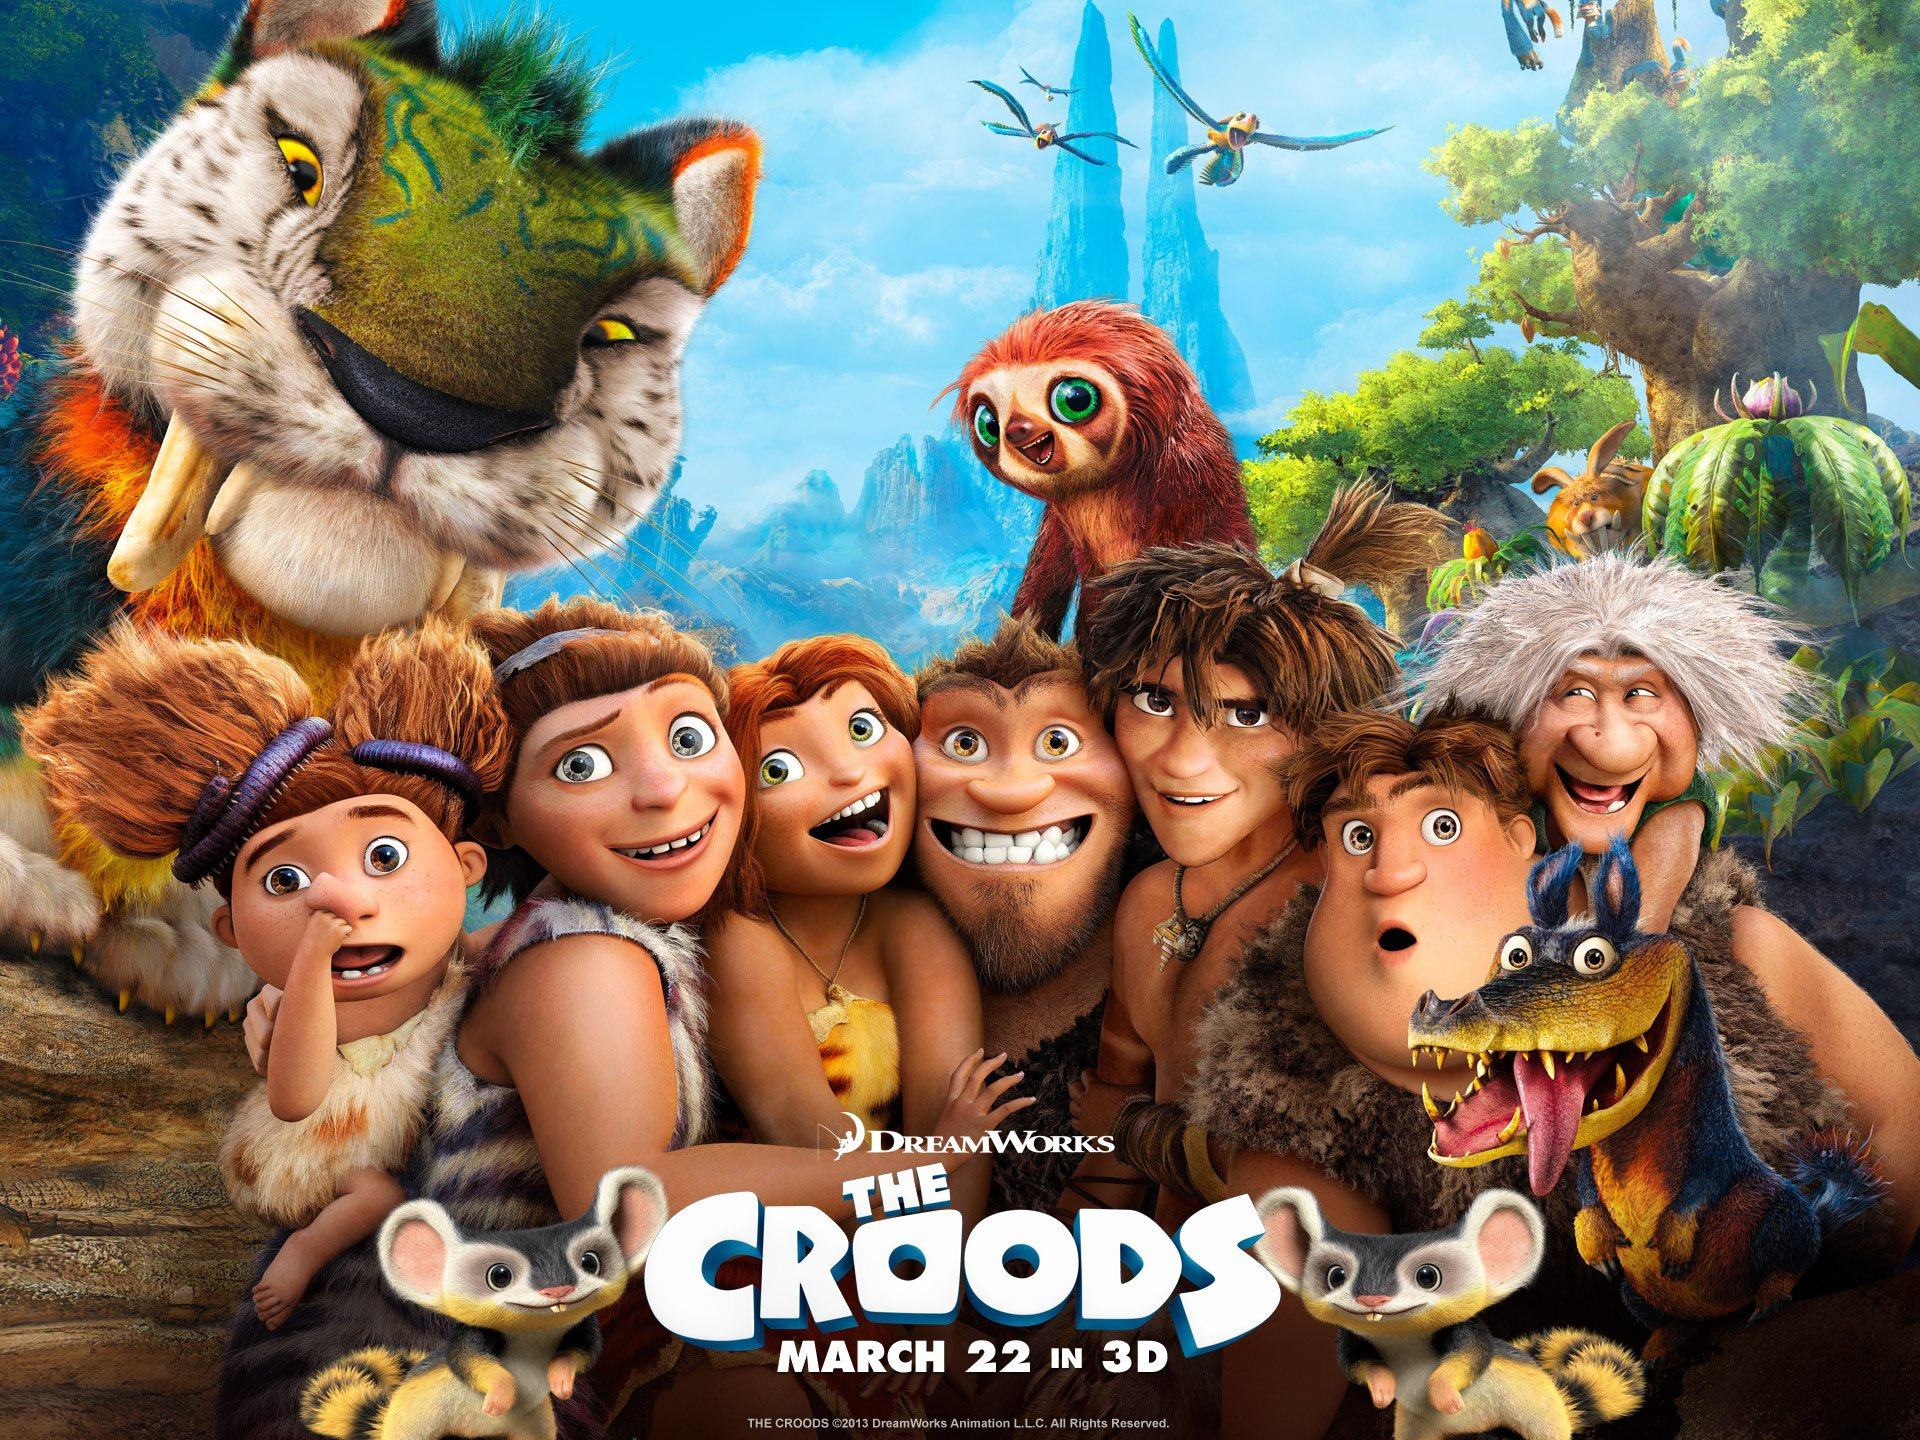 29 the croods hd wallpapers background images wallpaper abyss hd wallpaper background image id385644 1920x1440 movie the croods 1 like favorite voltagebd Gallery